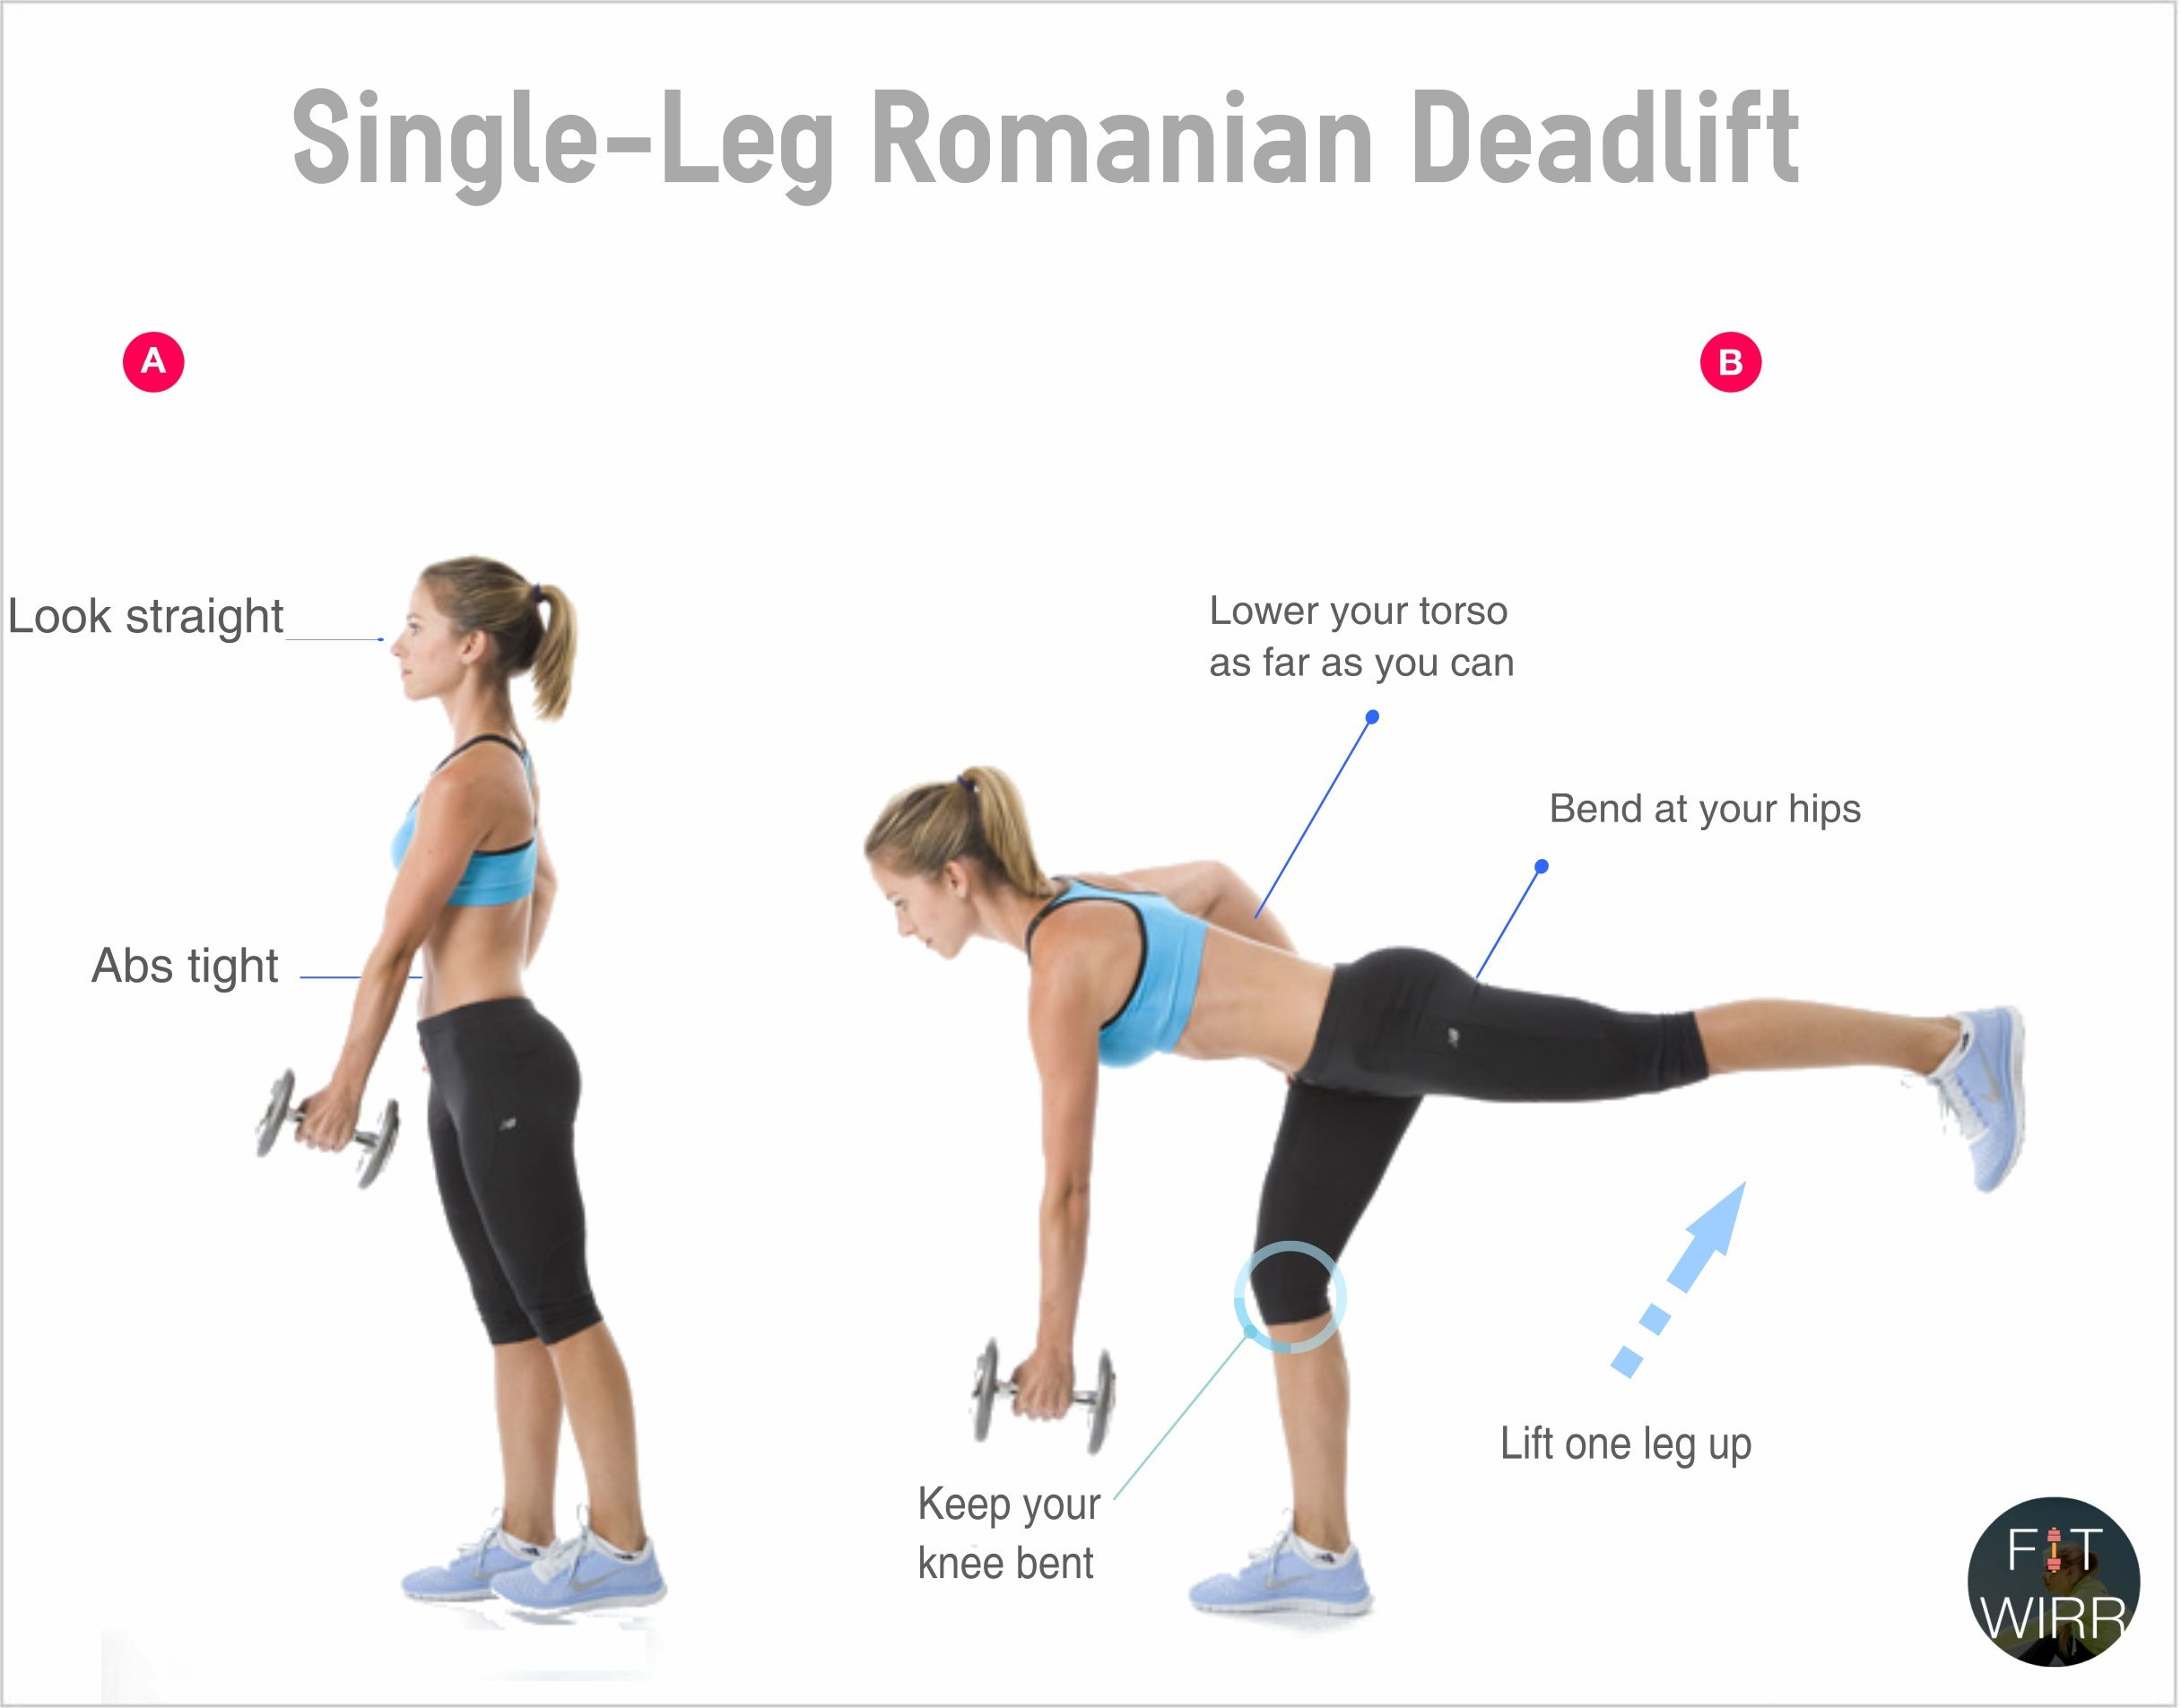 rdl form with dumbbells  How to Do A Romanian DeadLift (RDL) on One Leg | Single leg ...